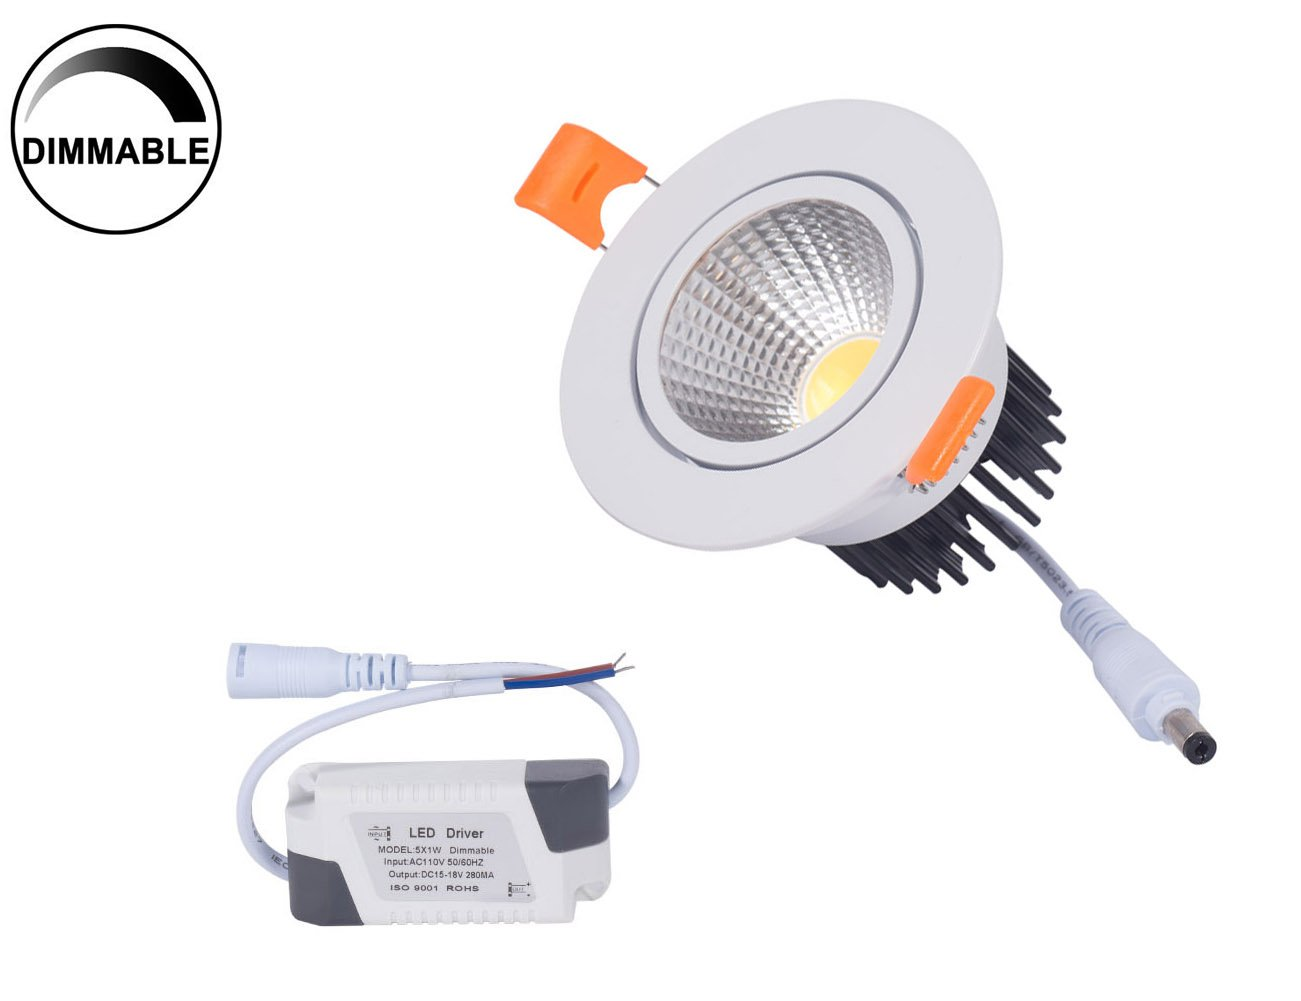 Dimmable 5W Recessed LED Downlight,Cut-Out 2.5in 60 Beam Angle 3000K Warm White Ceiling Light with Driver